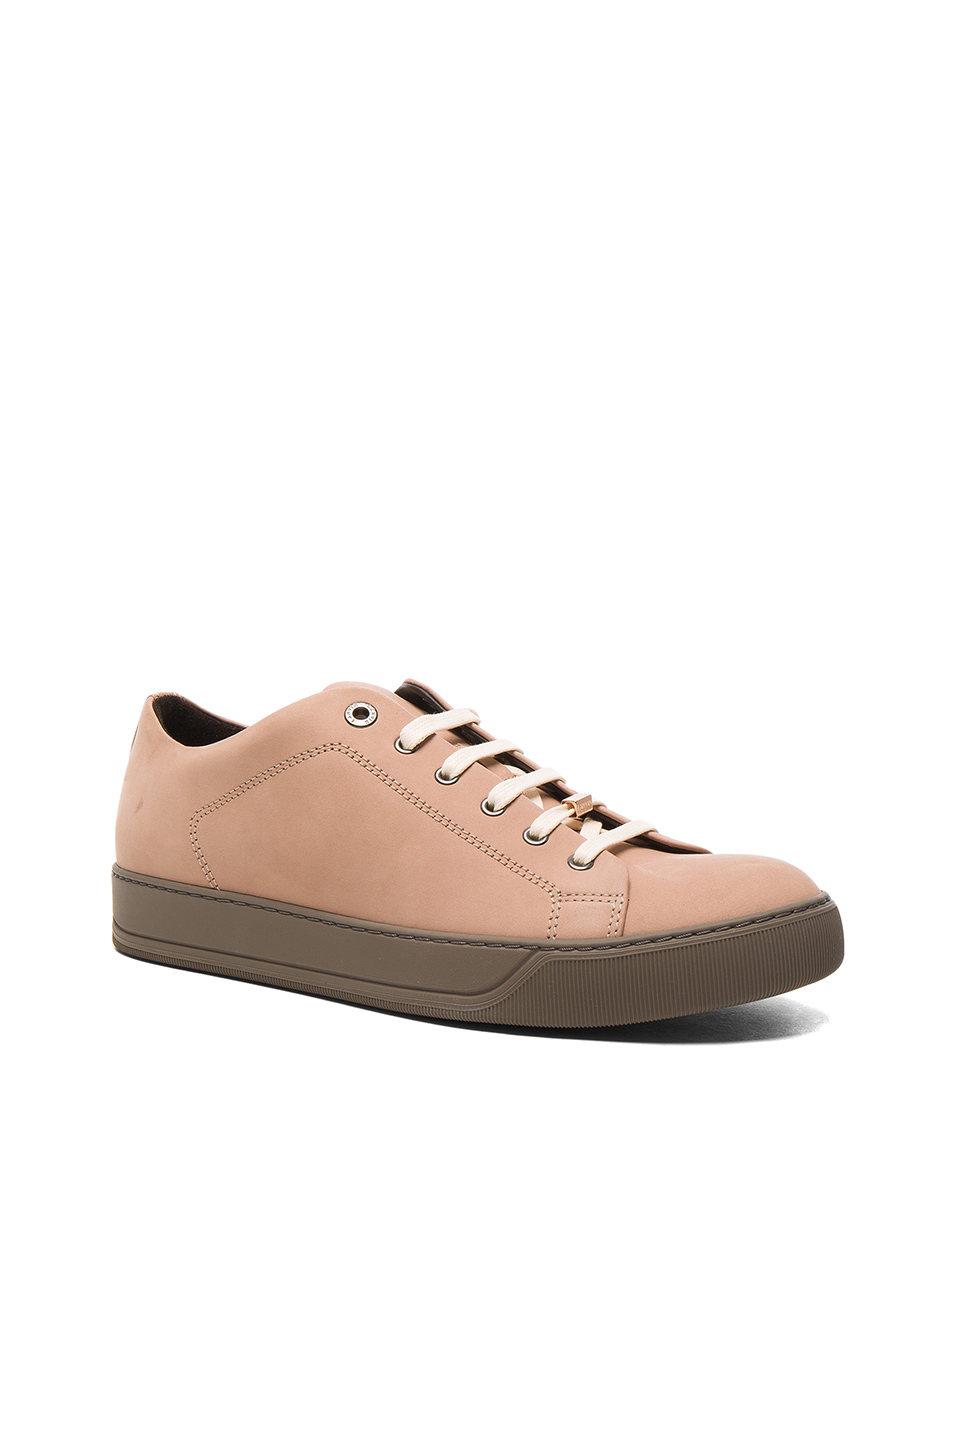 Lanvin Nubuck Calfskin Low Top Sneakers in Neutrals